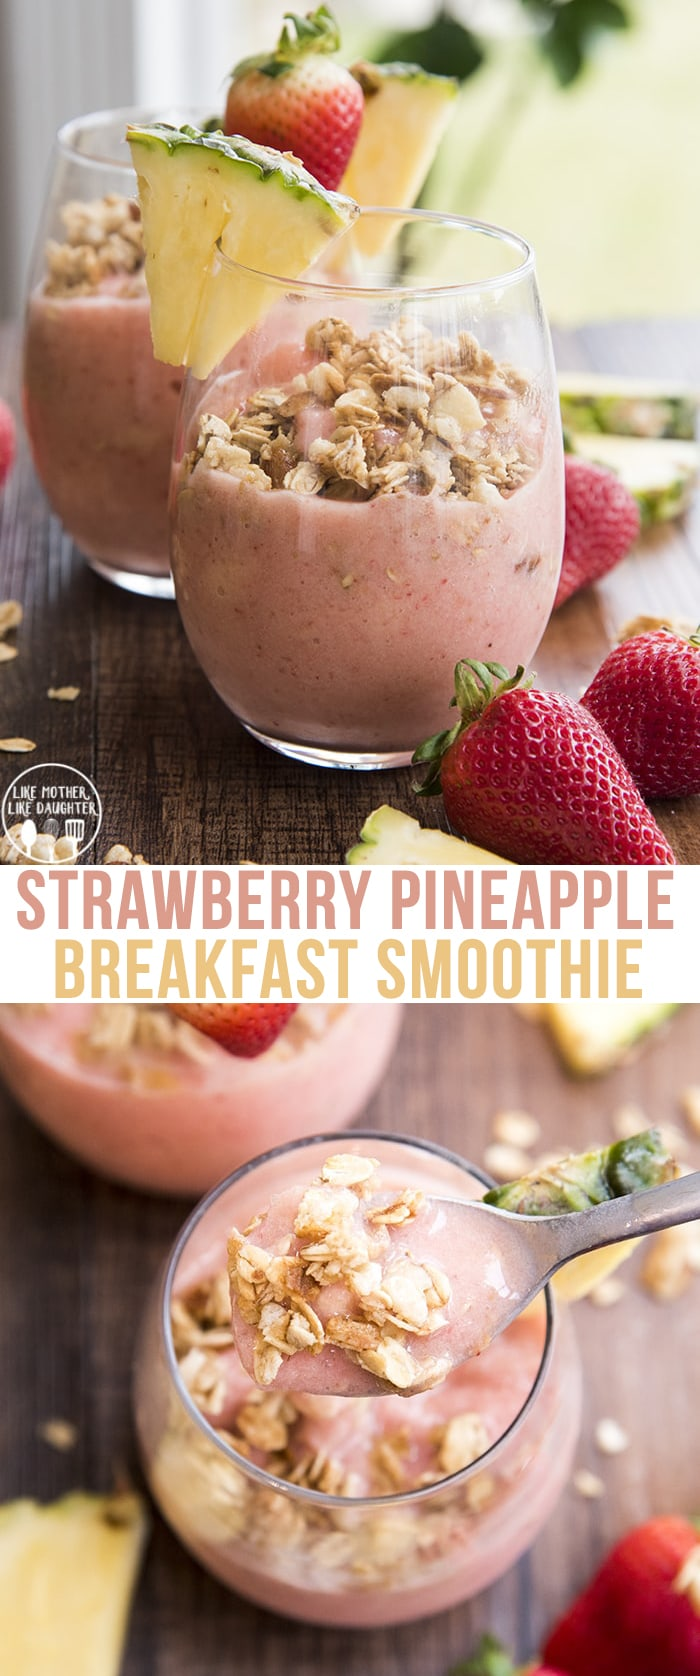 This Strawberry Pineapple smoothie is an easy smoothie with only 5 ingredients, that is the perfect way to start your day!